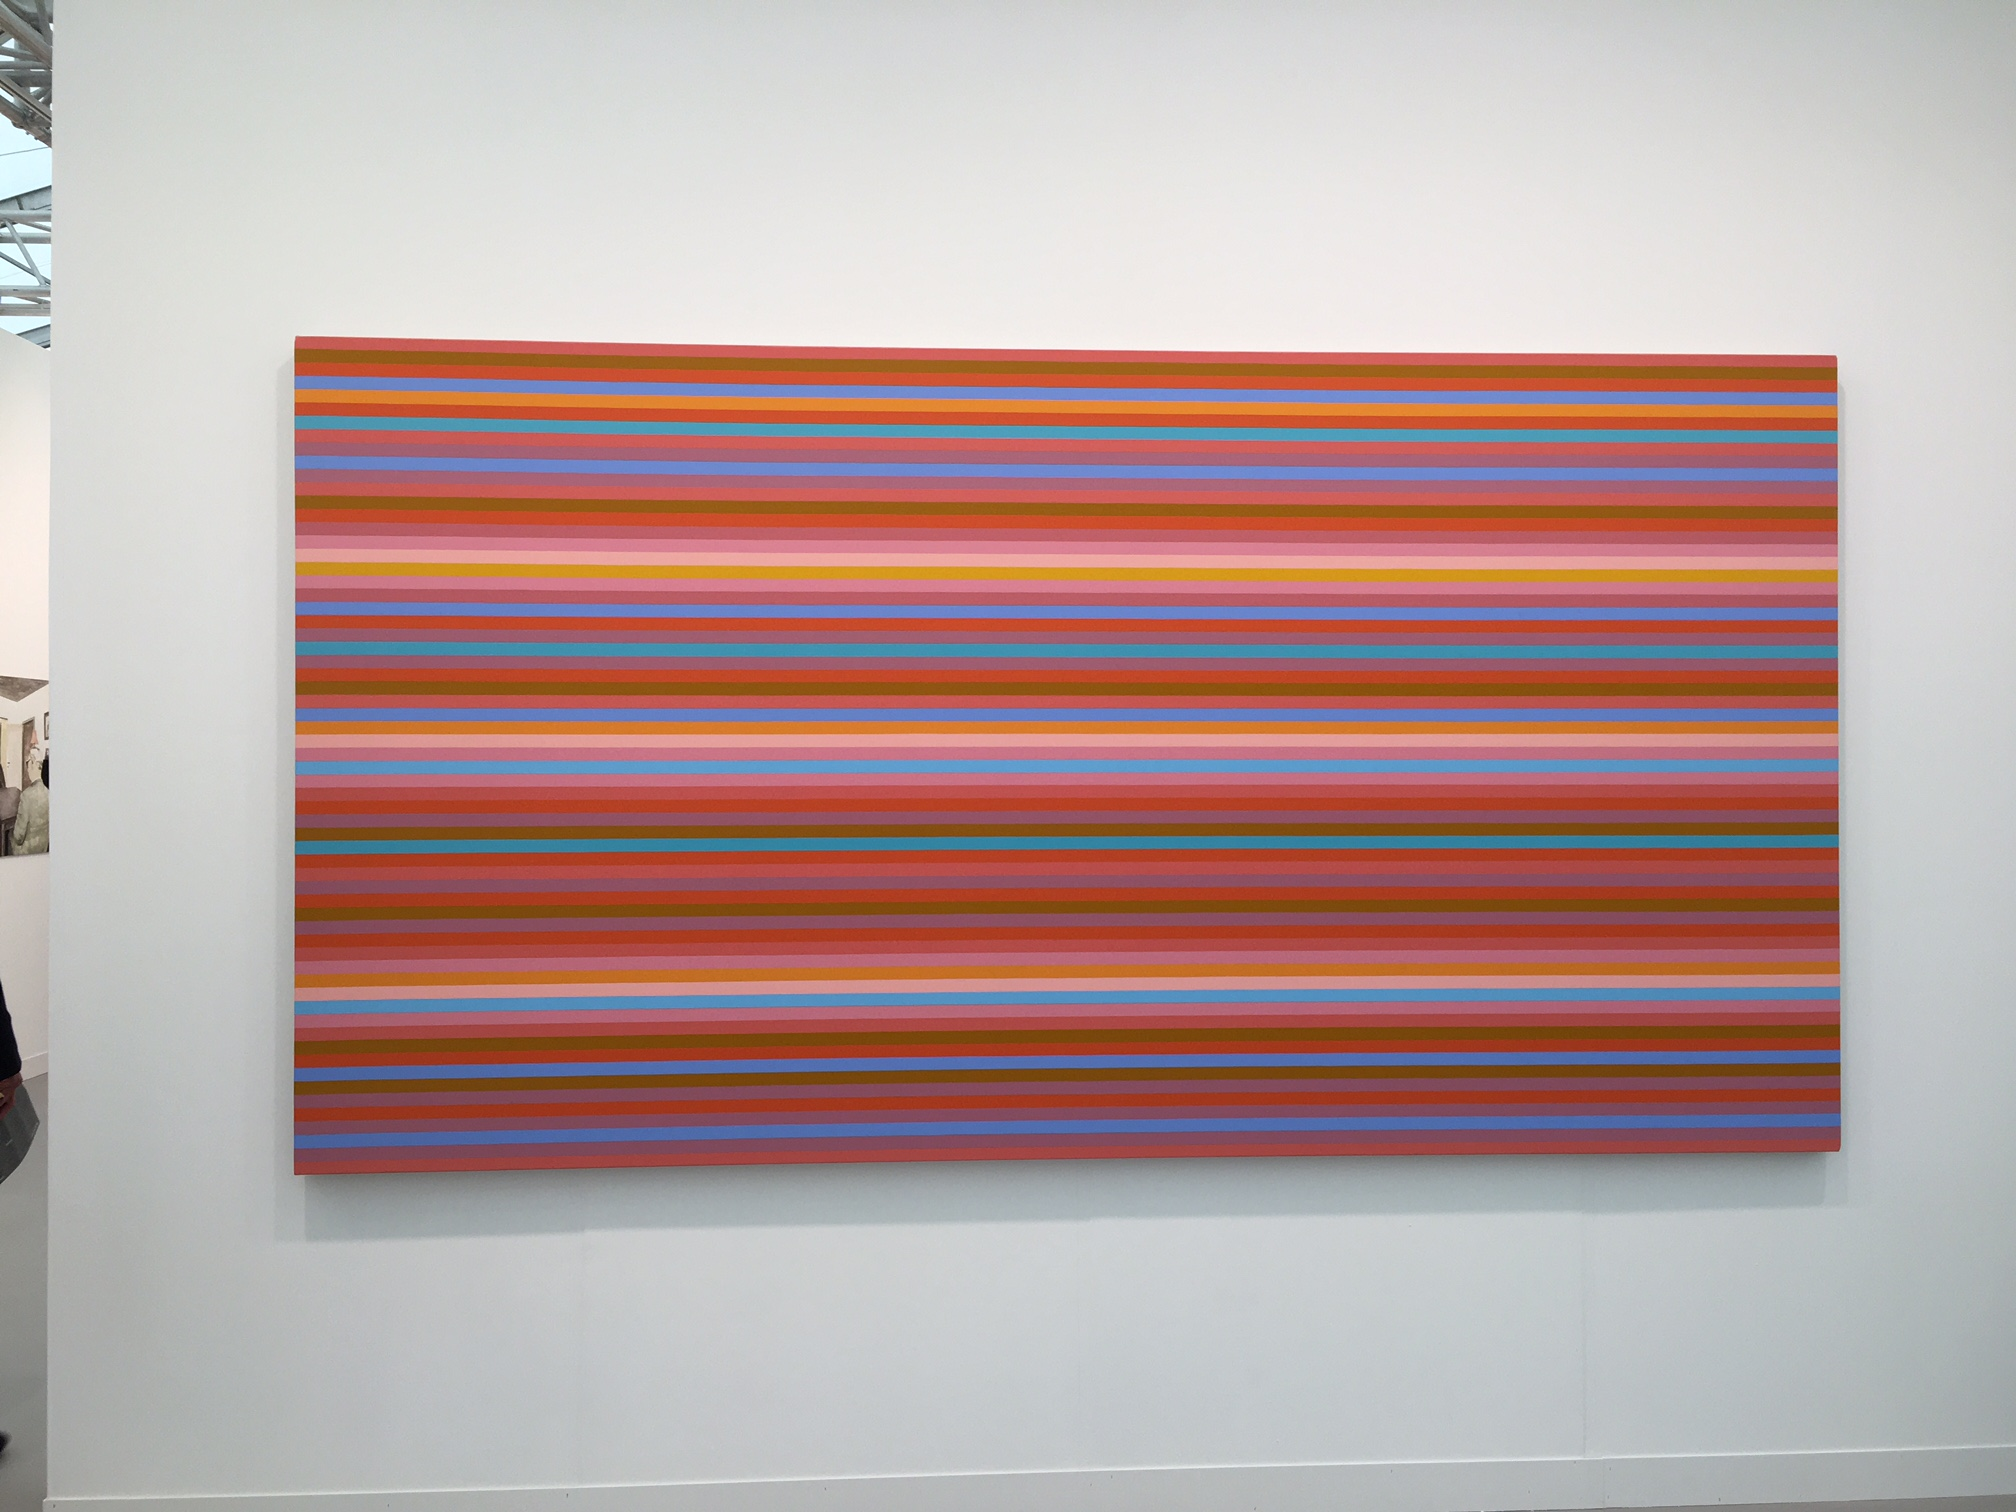 A painting by Bridget Riley, £700,00 (sold, but they have another painting by her in their gallery!)